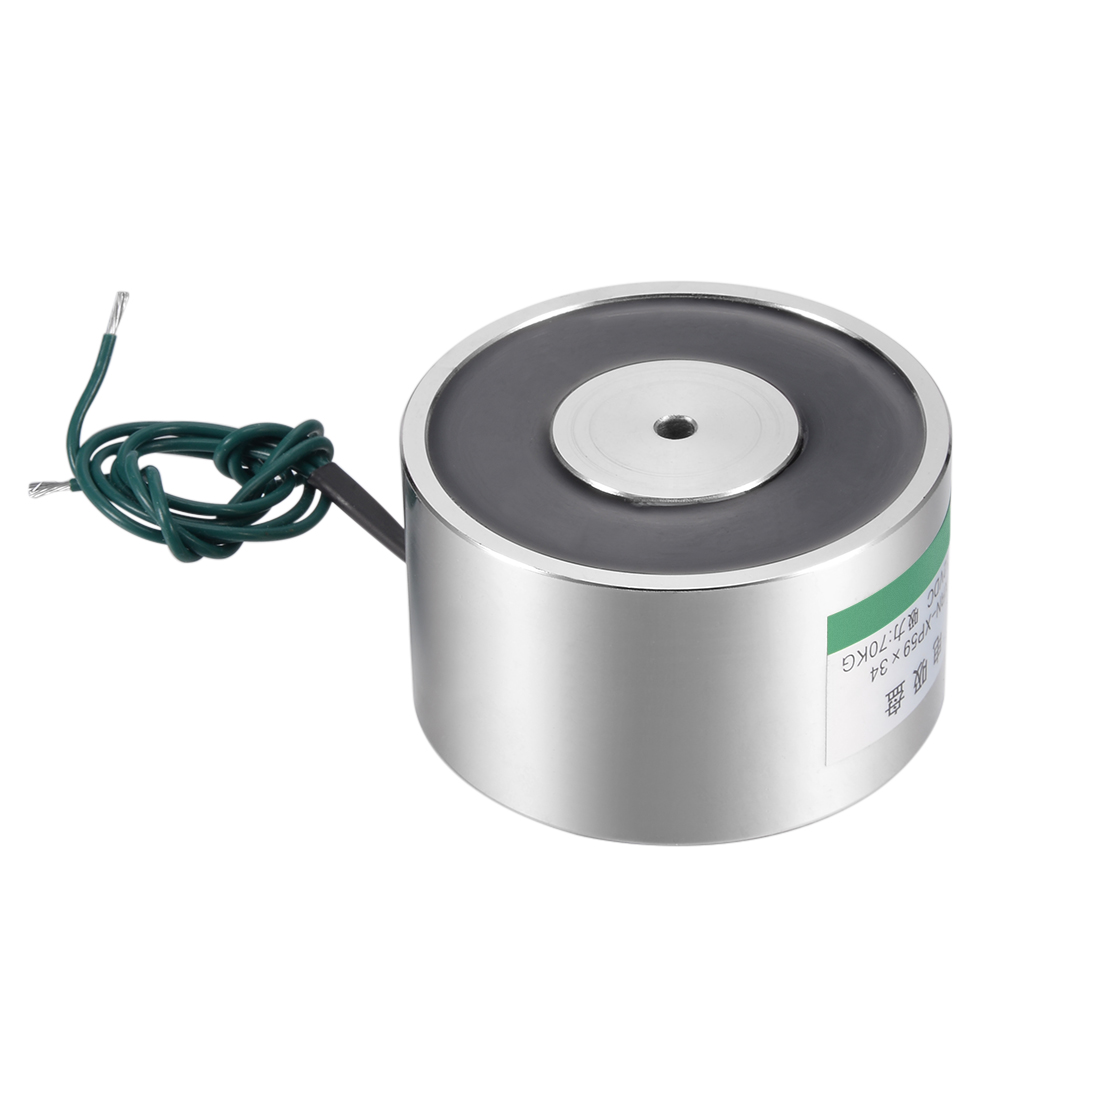 uxcell 59mm x 34mm DC12V 700N Sucking Disc Solenoid Lift Holding Electromagnet|Lifting Tools & Accessories| |  - title=